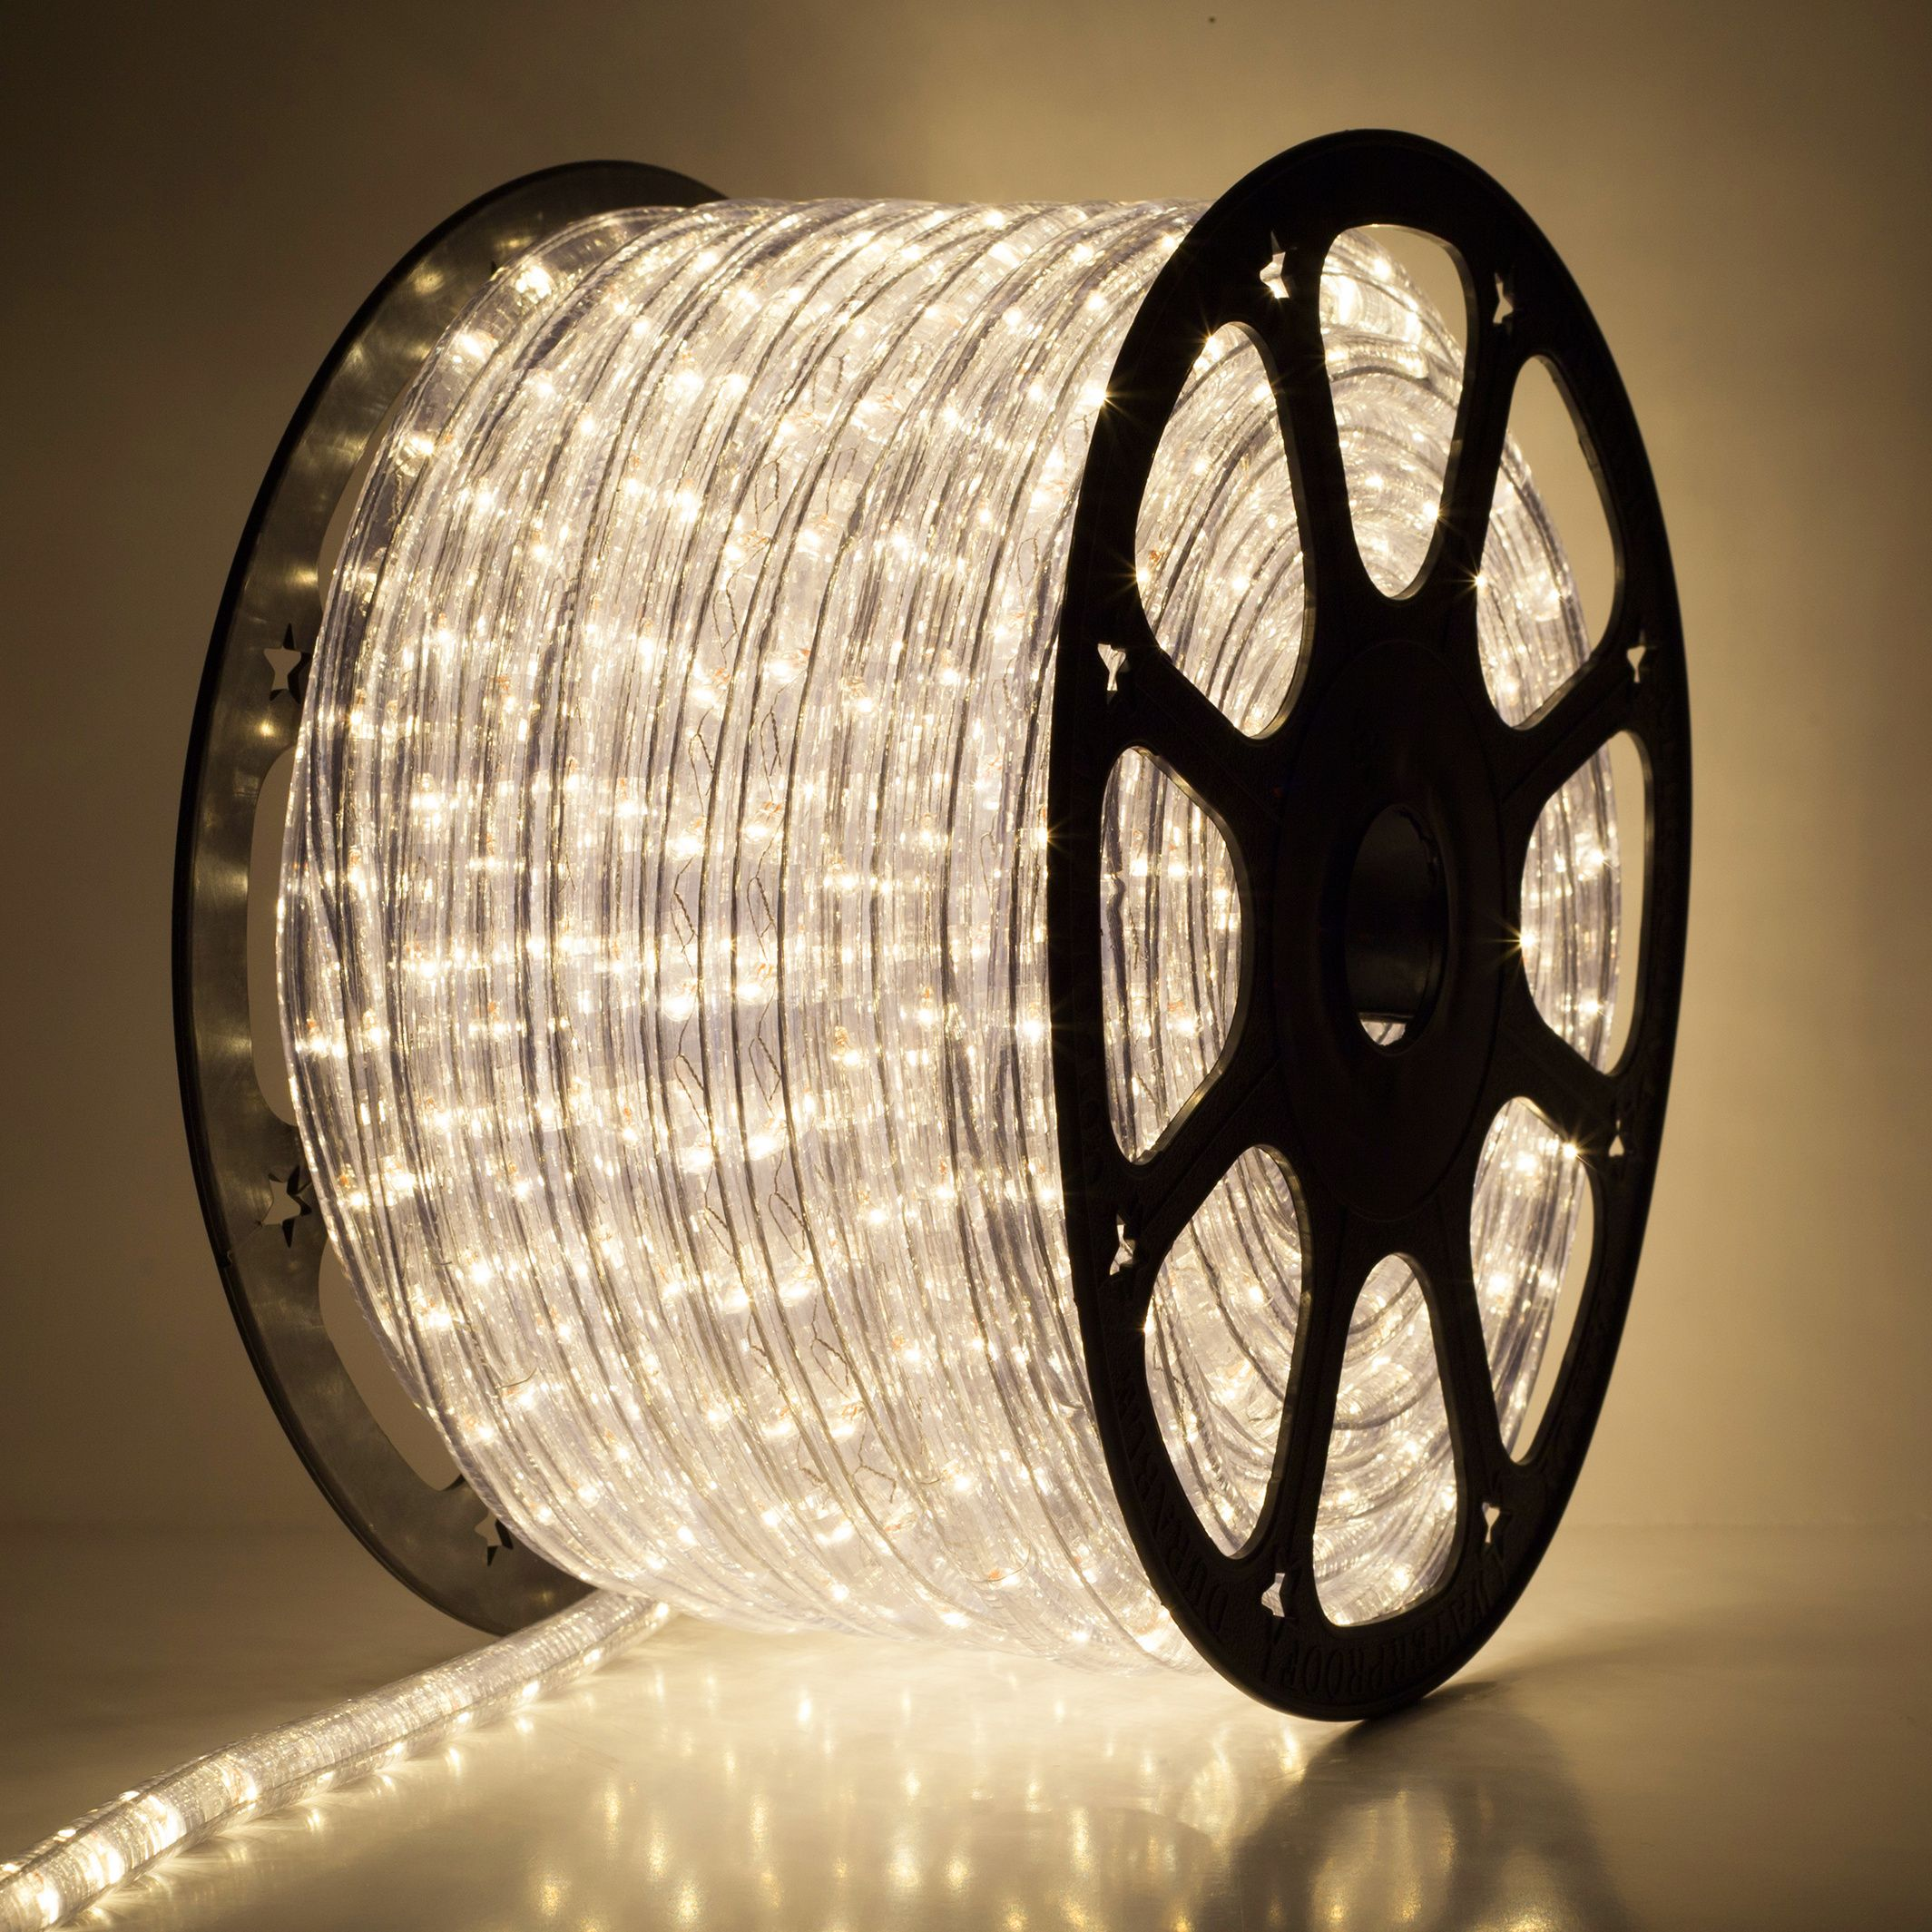 Rope light instructions rope lighting lights and garden rope light diy information to cutspliceend cap and install this versatile lighting mozeypictures Choice Image